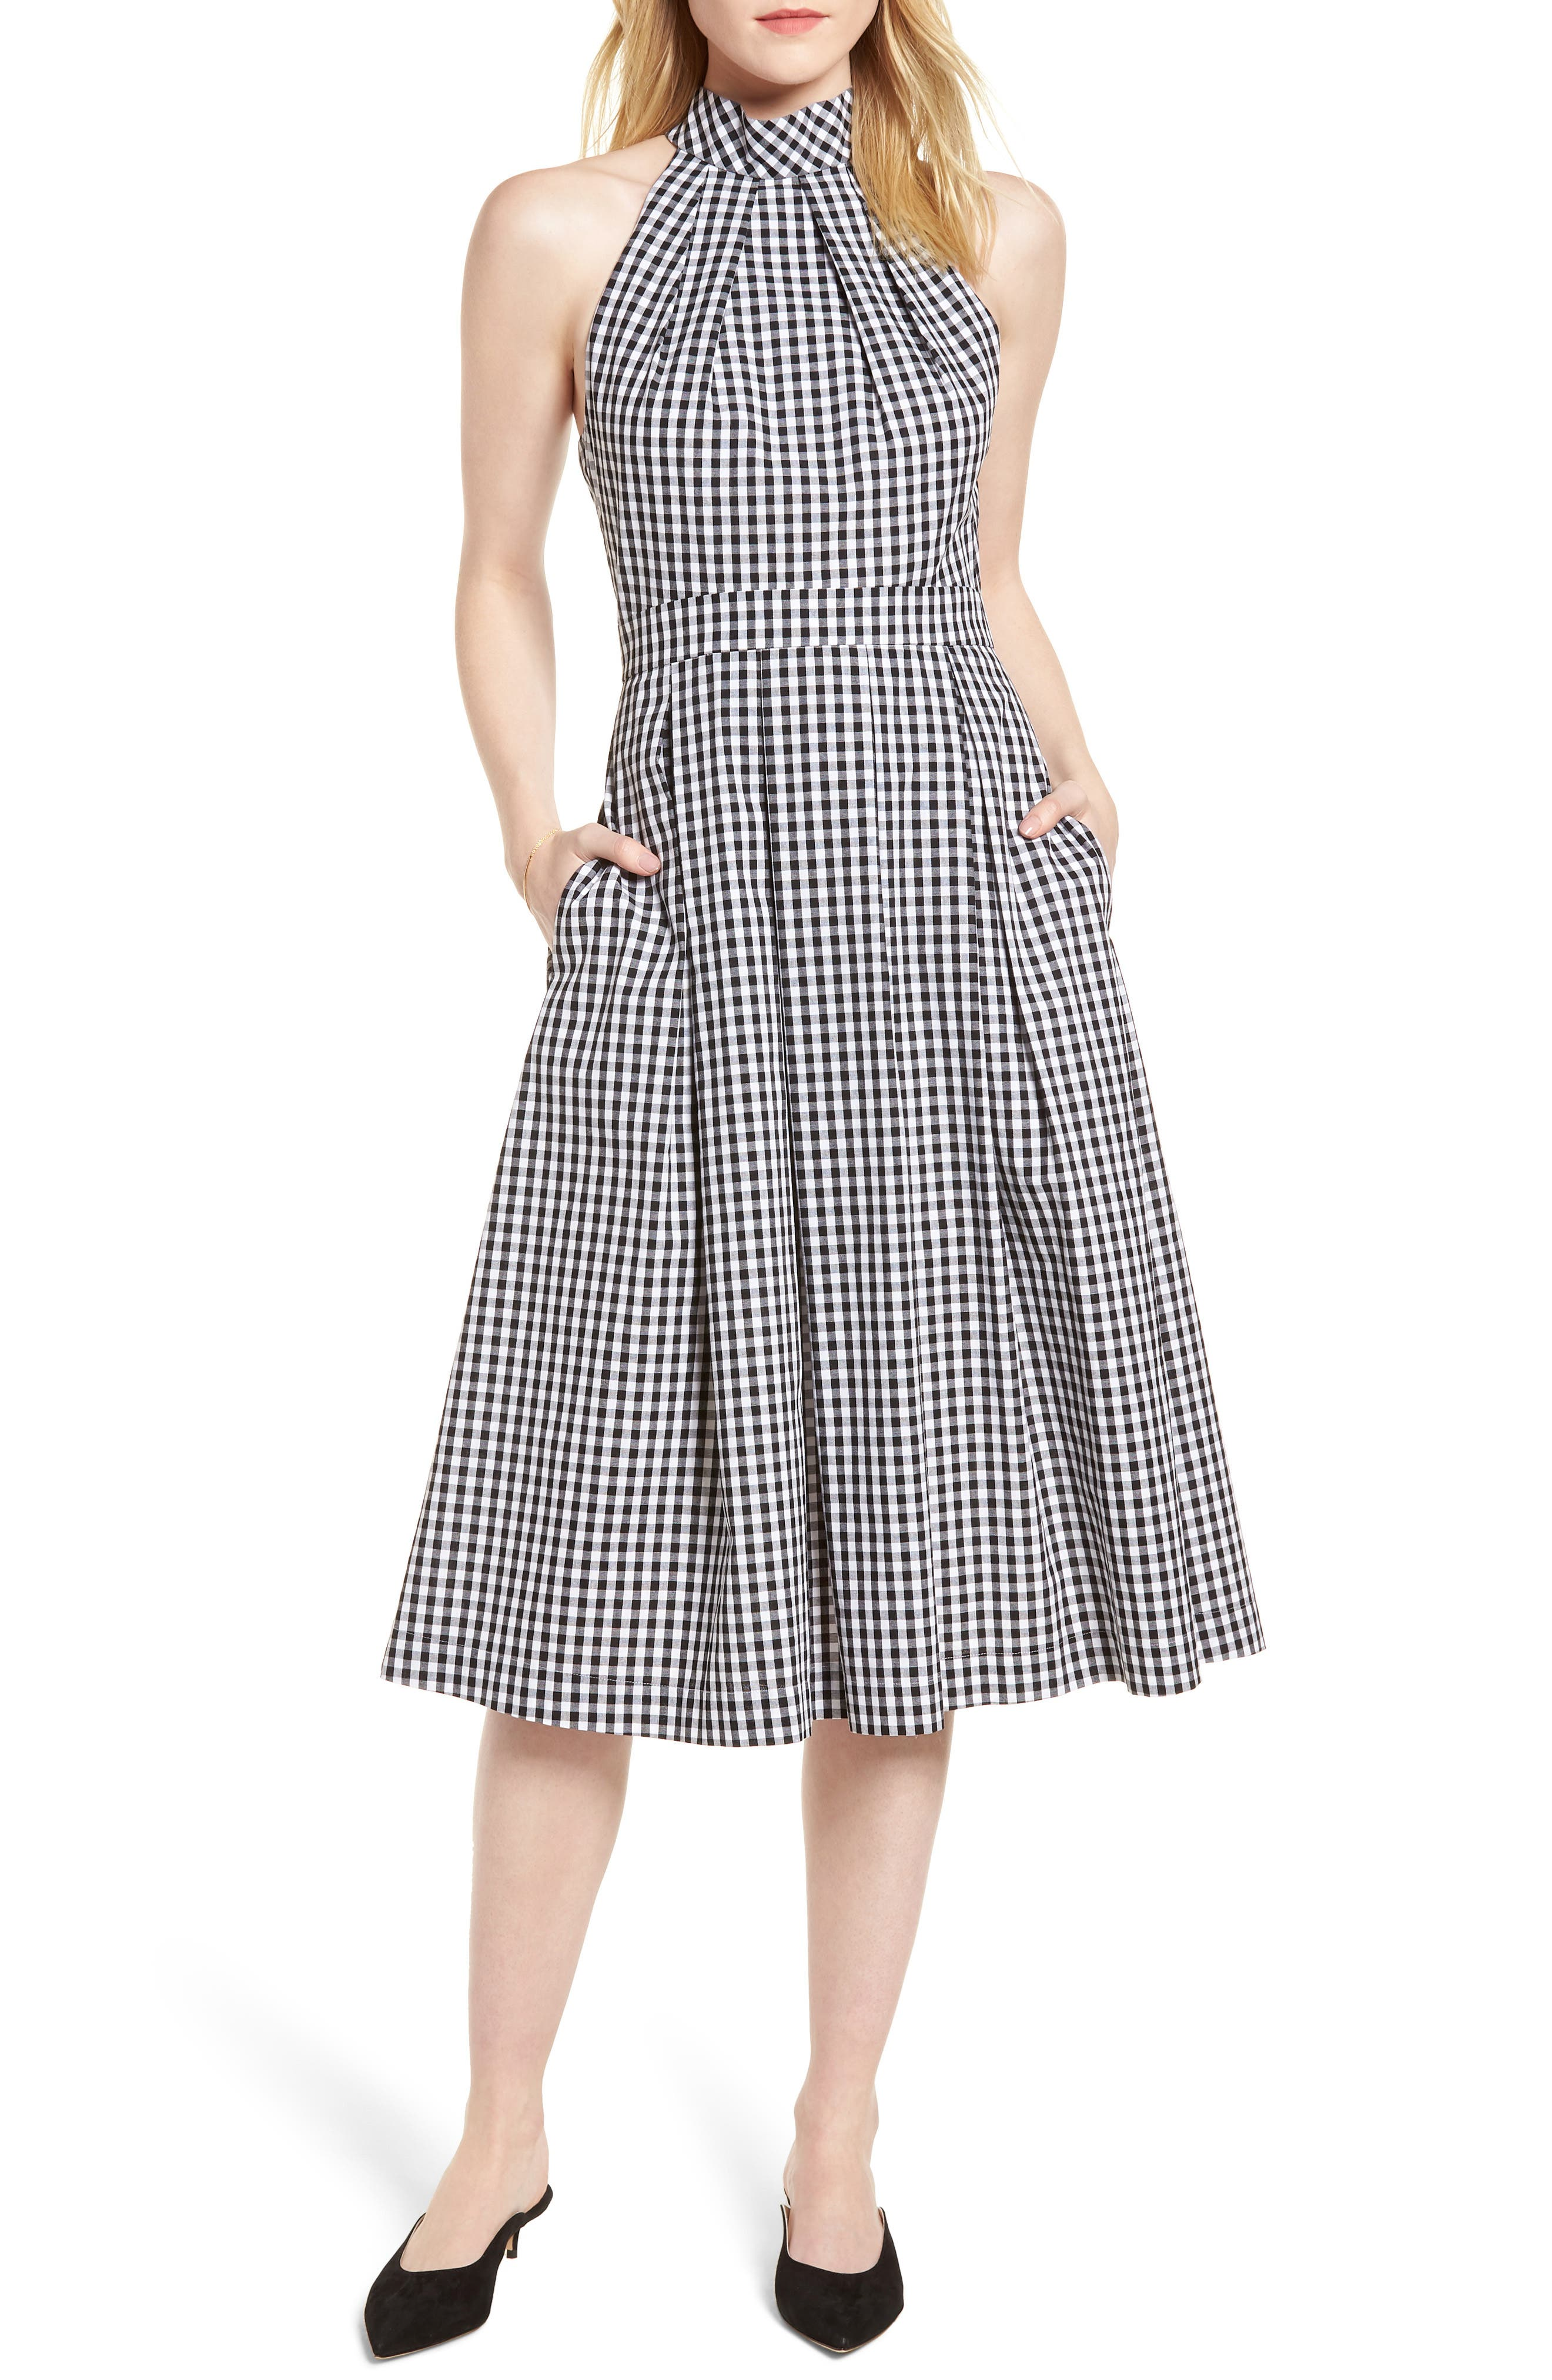 Gingham Halter Dress,                             Main thumbnail 1, color,                             Black- White Gingham